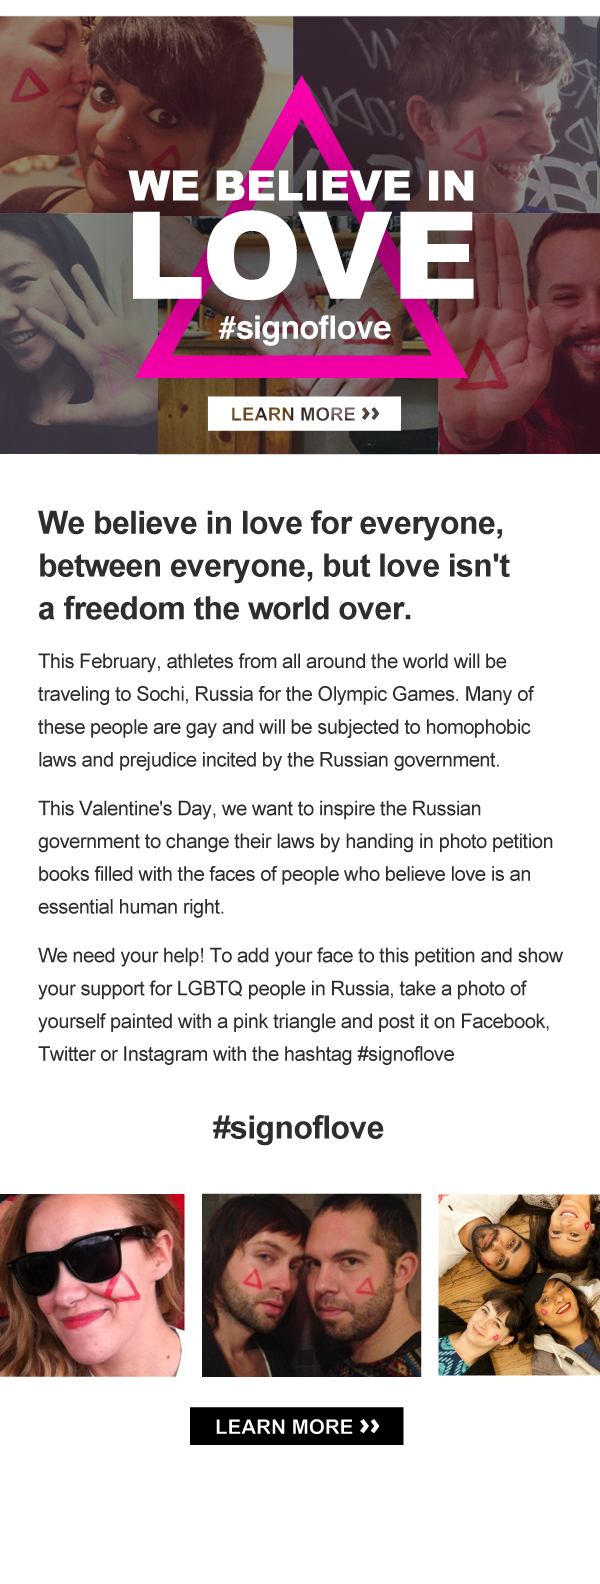 This February, athletes from all around the world will be travelling to Sochi, Russia for the Olympic Games. Many of these people are gay and will be subjected to homophobic laws and prejudice incited by the Russian government.  This Valentine's Day, we want to inspire the Russian government to change their laws by handing in photo petition books filled with the faces of people who believe love is an essential human right. We need your help! To add your face to this petition and show your support for LGBTQ people in Russia, take a photo of yourself painted with a pink triangle and post it on Facebook, Twitter or Instagram with the hashtag #signoflove